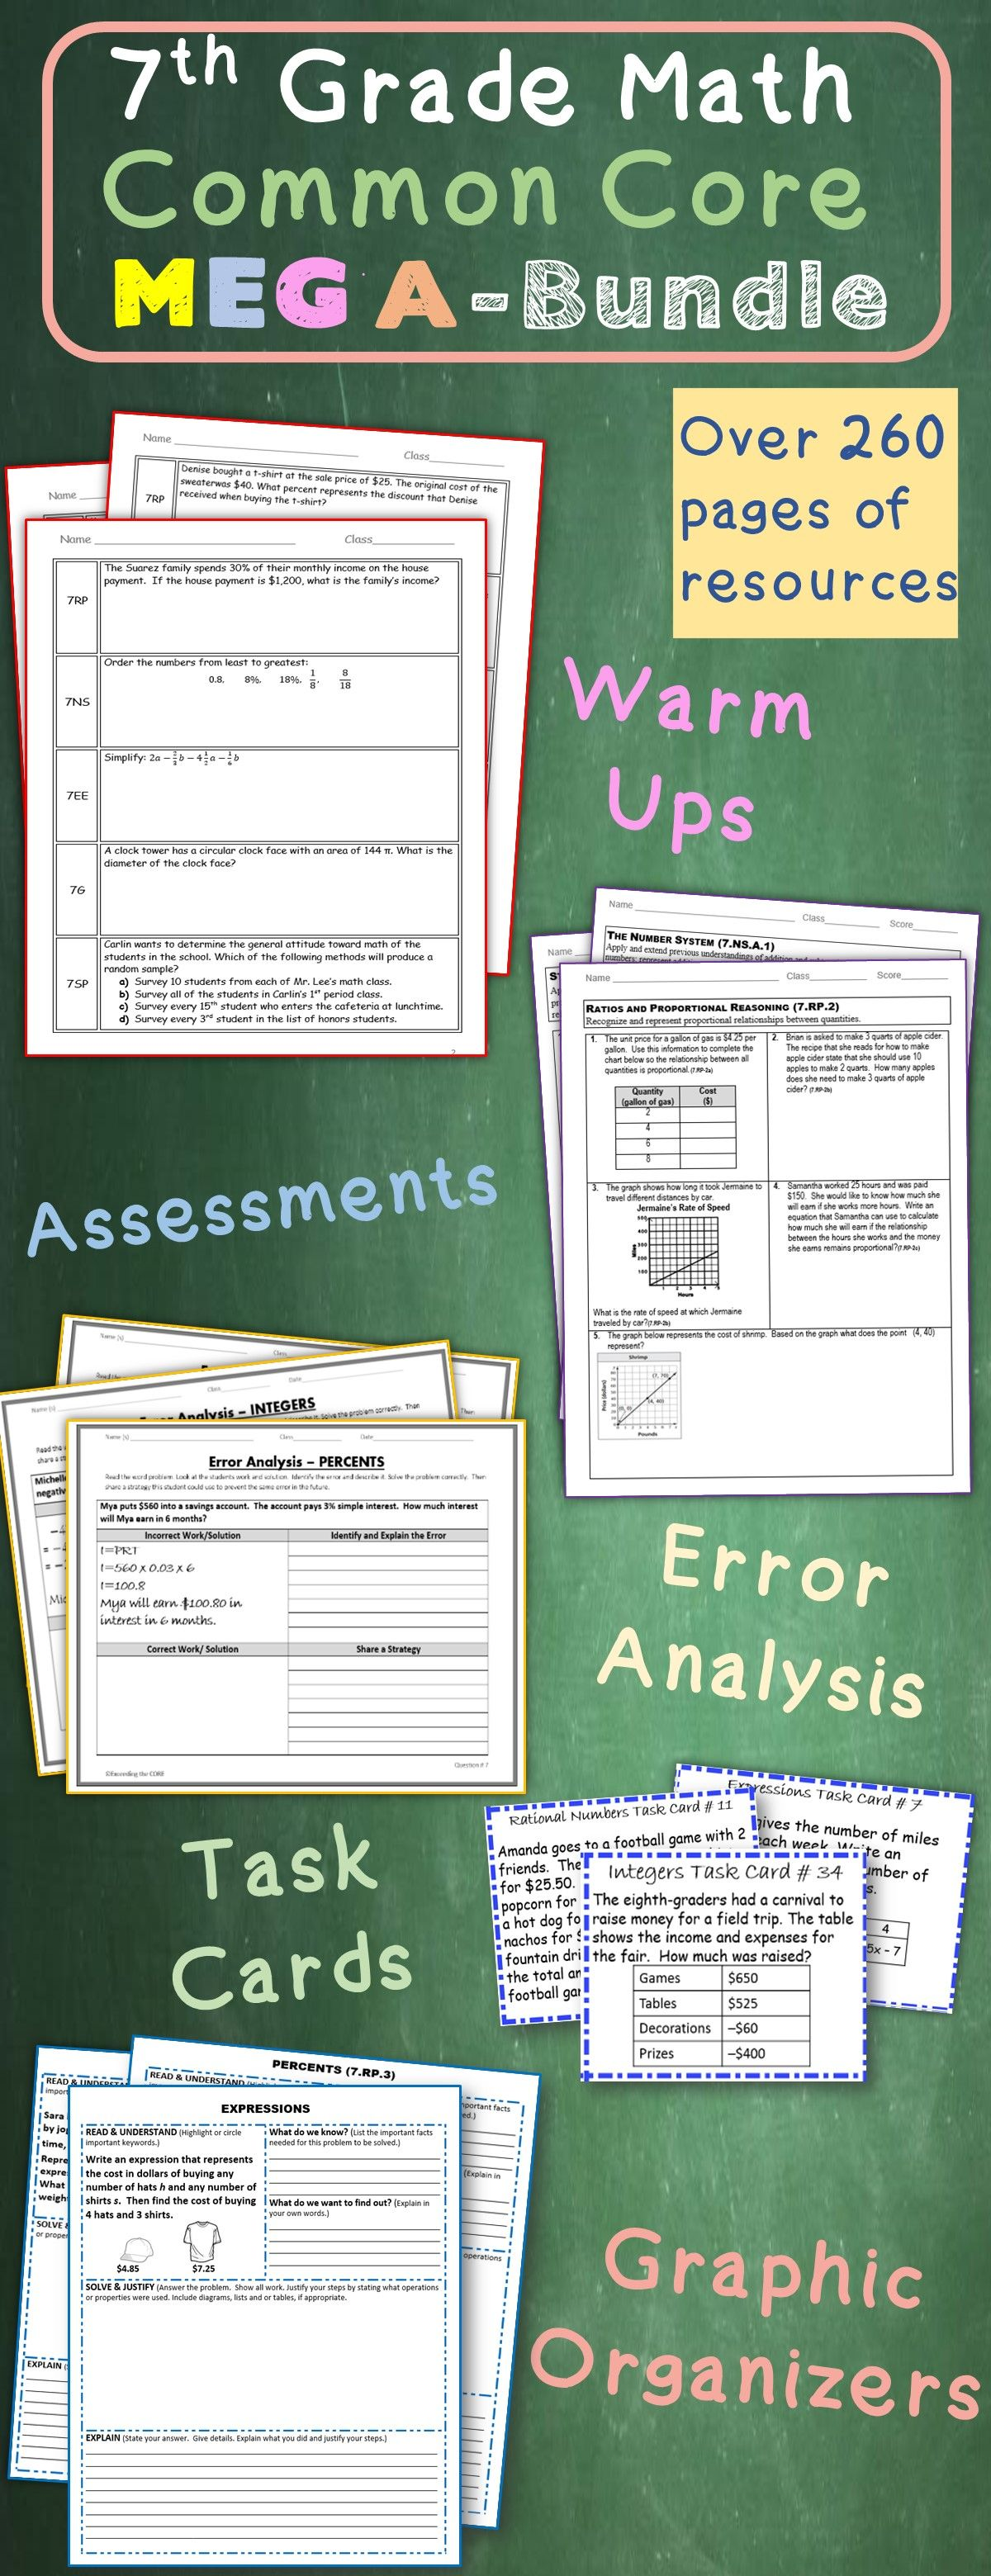 7th Grade Math Common Core Assessments Warm Ups Task Cards Worksheets